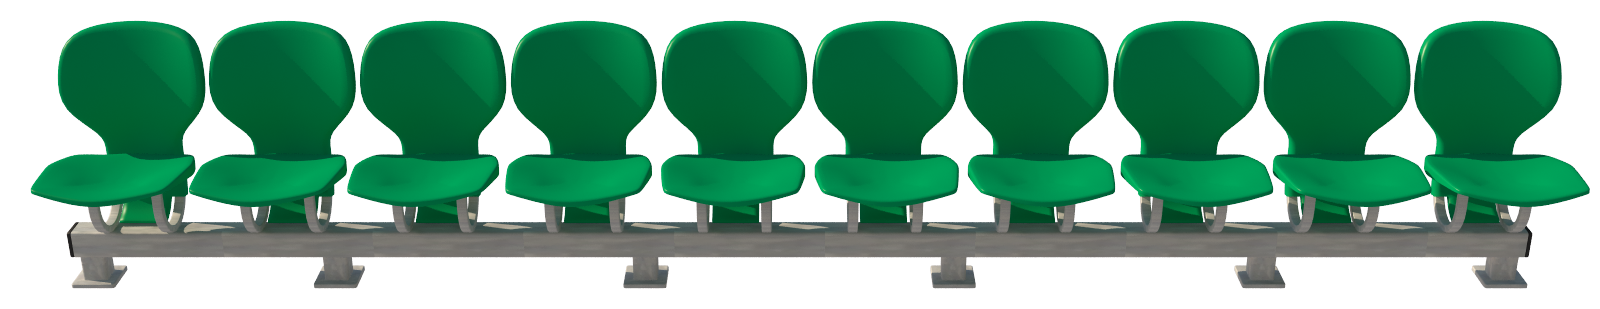 Stadium Seating-chairs.png